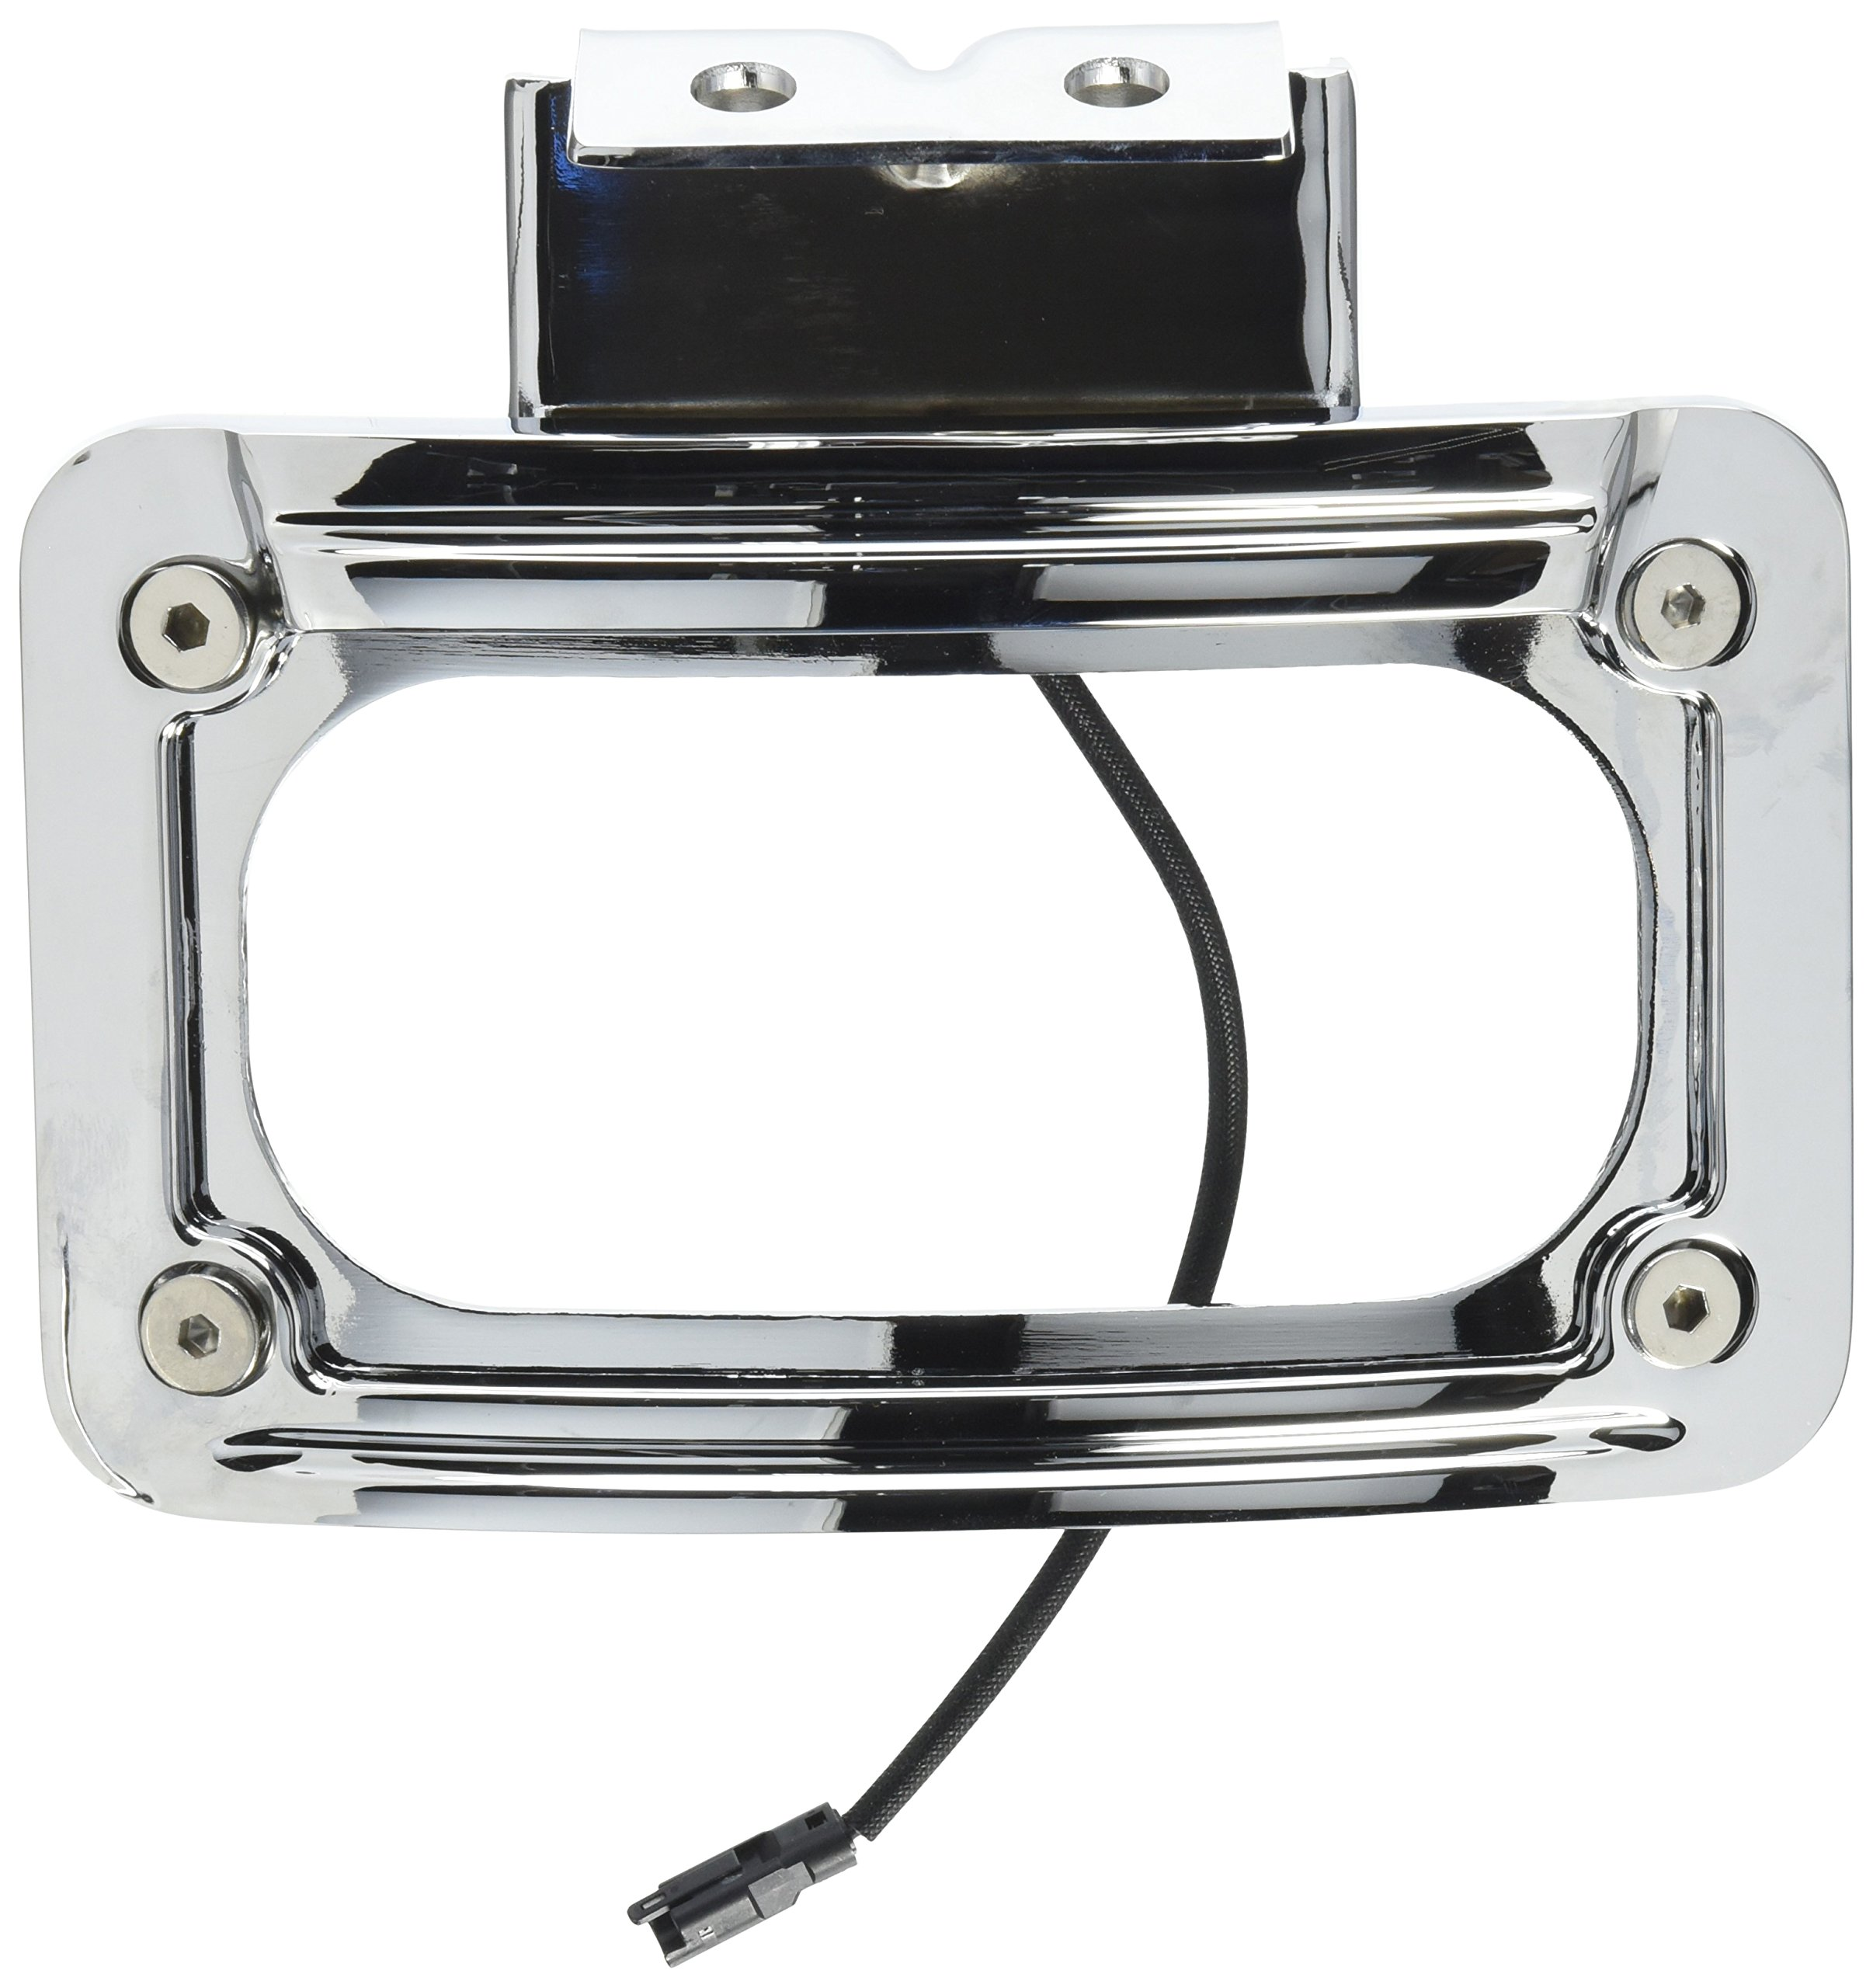 Kuryakyn 5699 LED Curved License Plate Frame with Mount by Kuryakyn